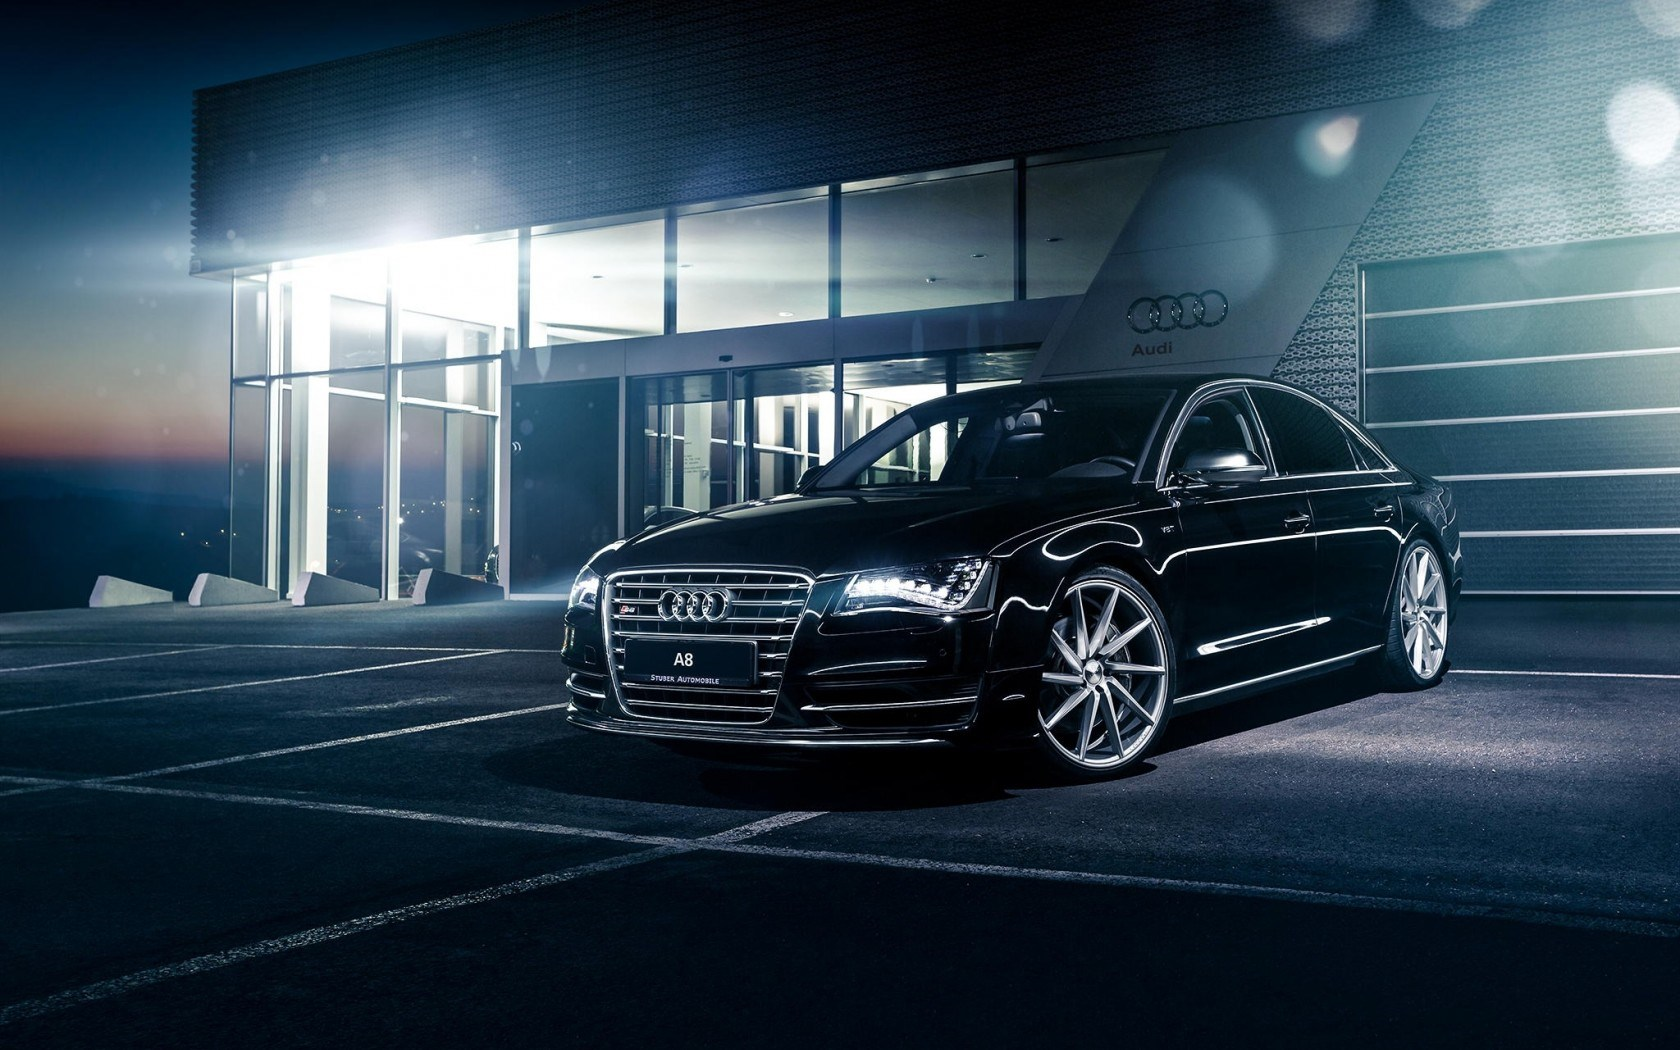 Awesome Pictures Audi S8 4K Ultra HD 24 Wallpapers 1680x1050